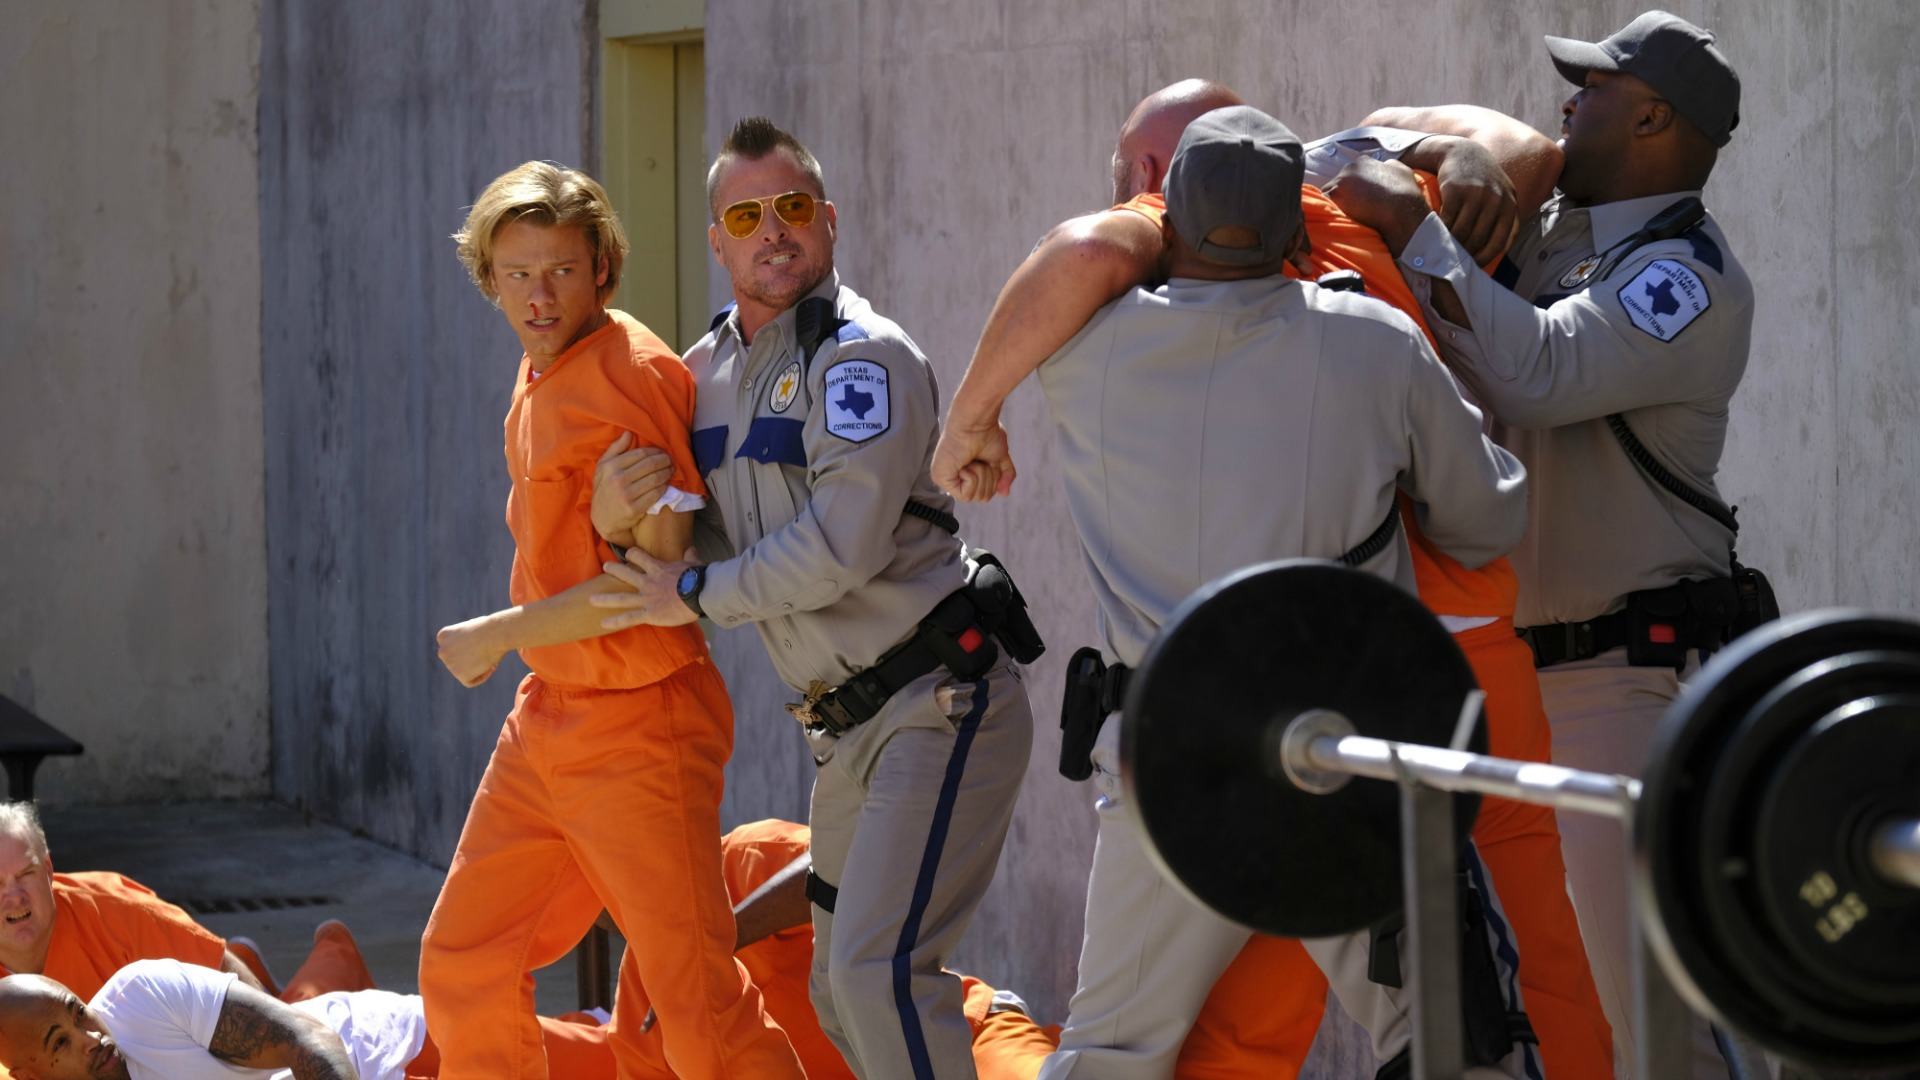 MacGvyer gets separated from a prison brawl.